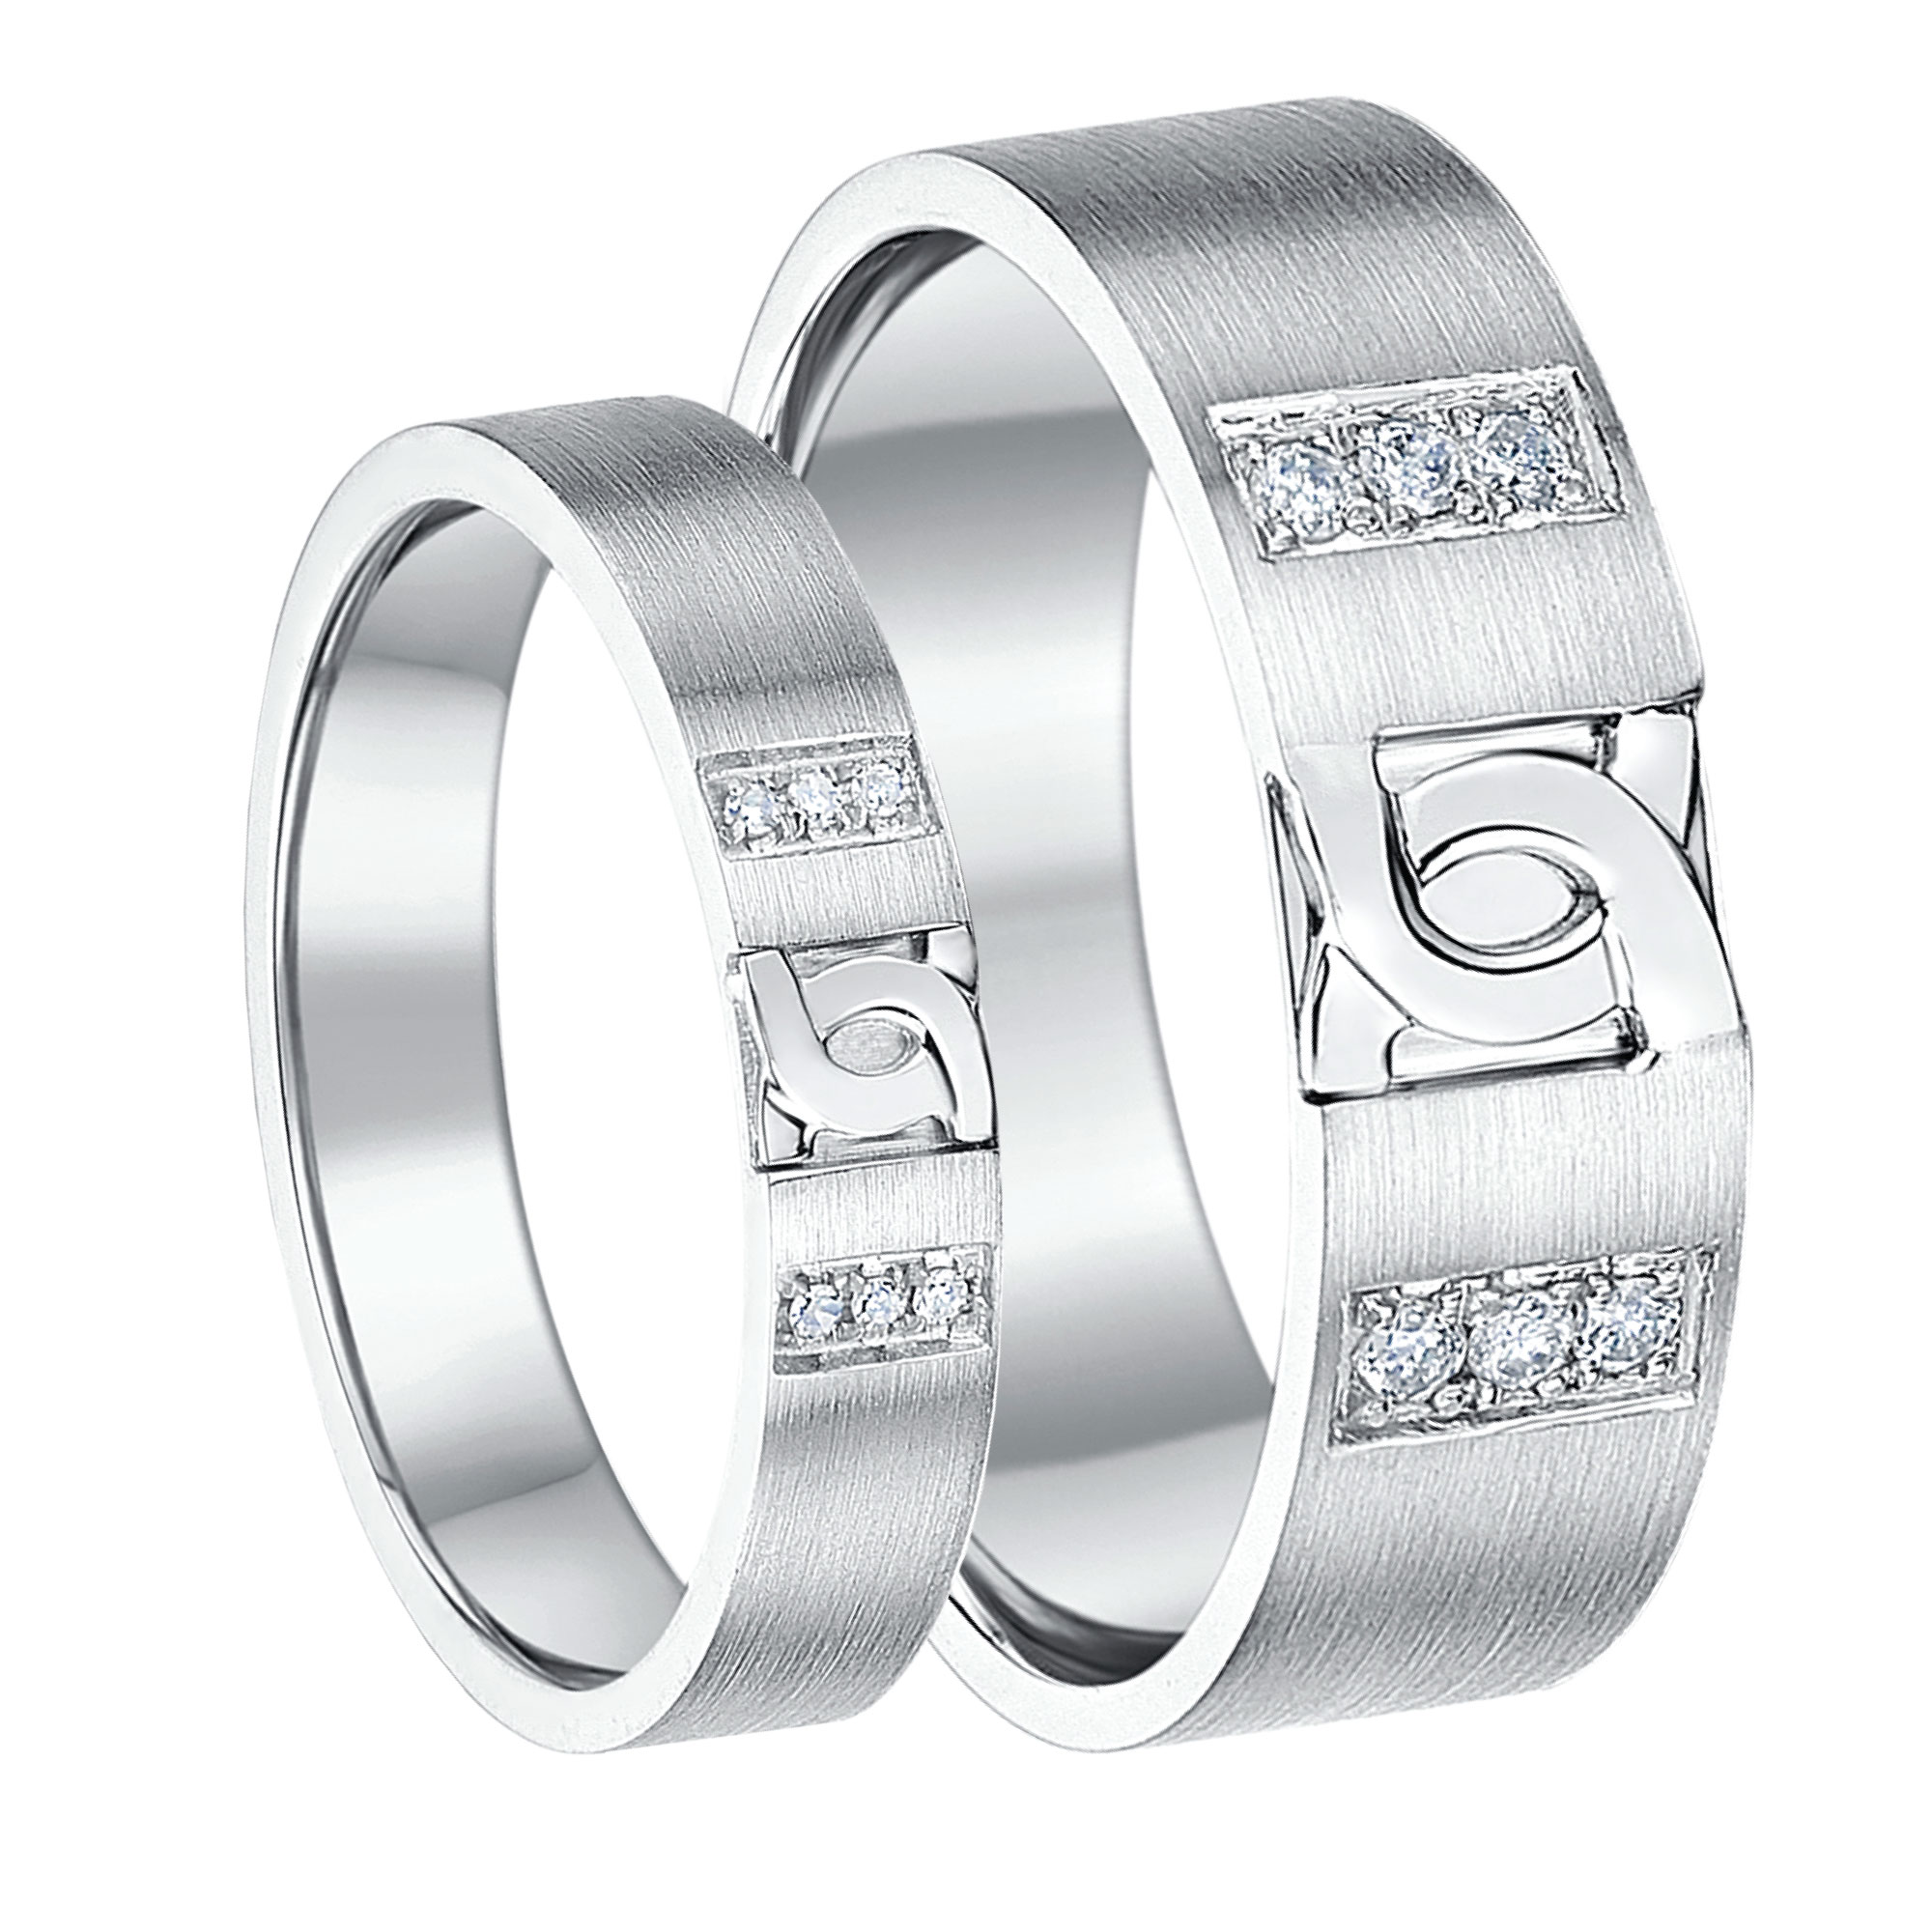 band patterned slant borsheims wedding tungsten rings